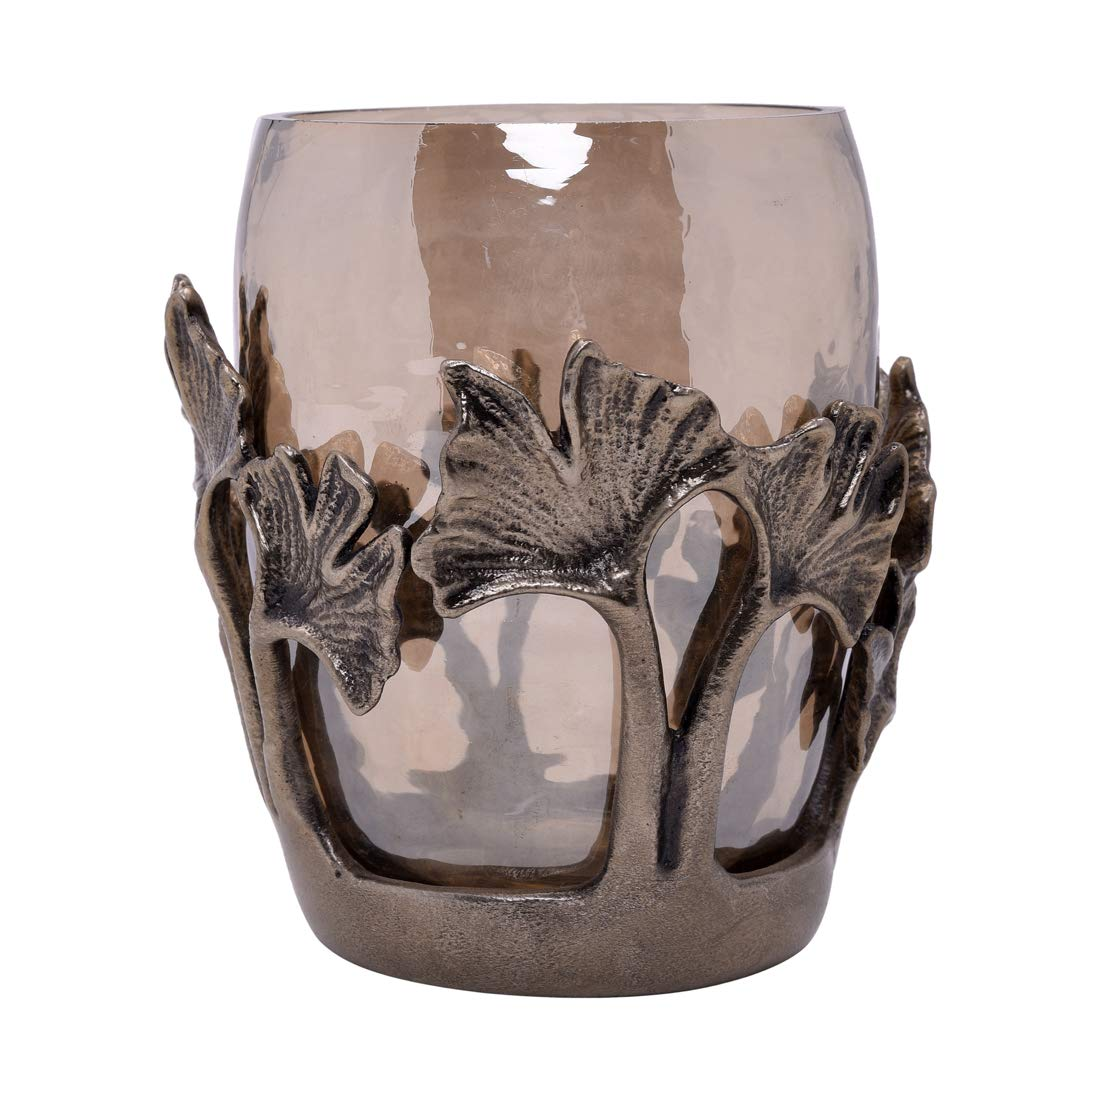 Decozen The Gingko Collection Glass Tumbler in Brown Luster Finish Antique Brass Finished Aluminum Base and Gingko Leaf Branches for Kitchen Bathroom Bedroom Decorative Tumbler by Decozen